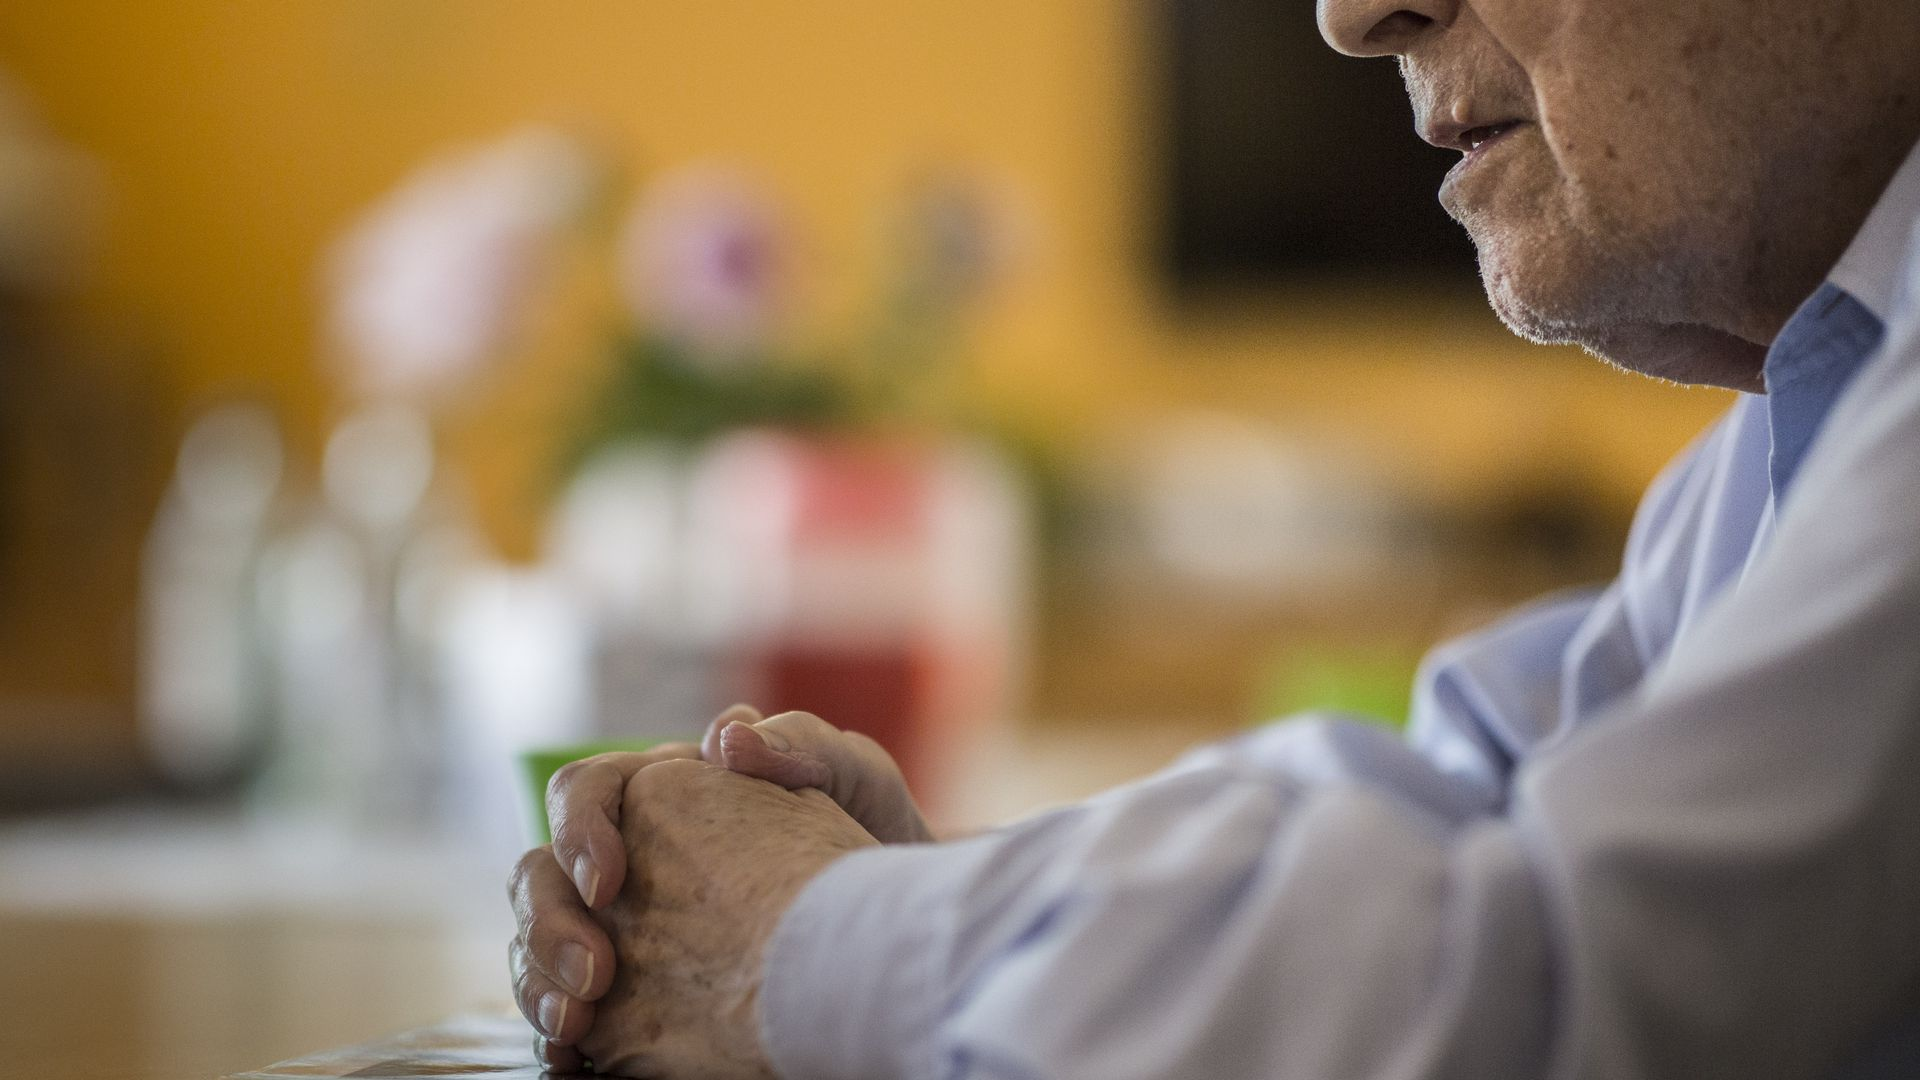 An elderly man sits at a table with his hands folded.